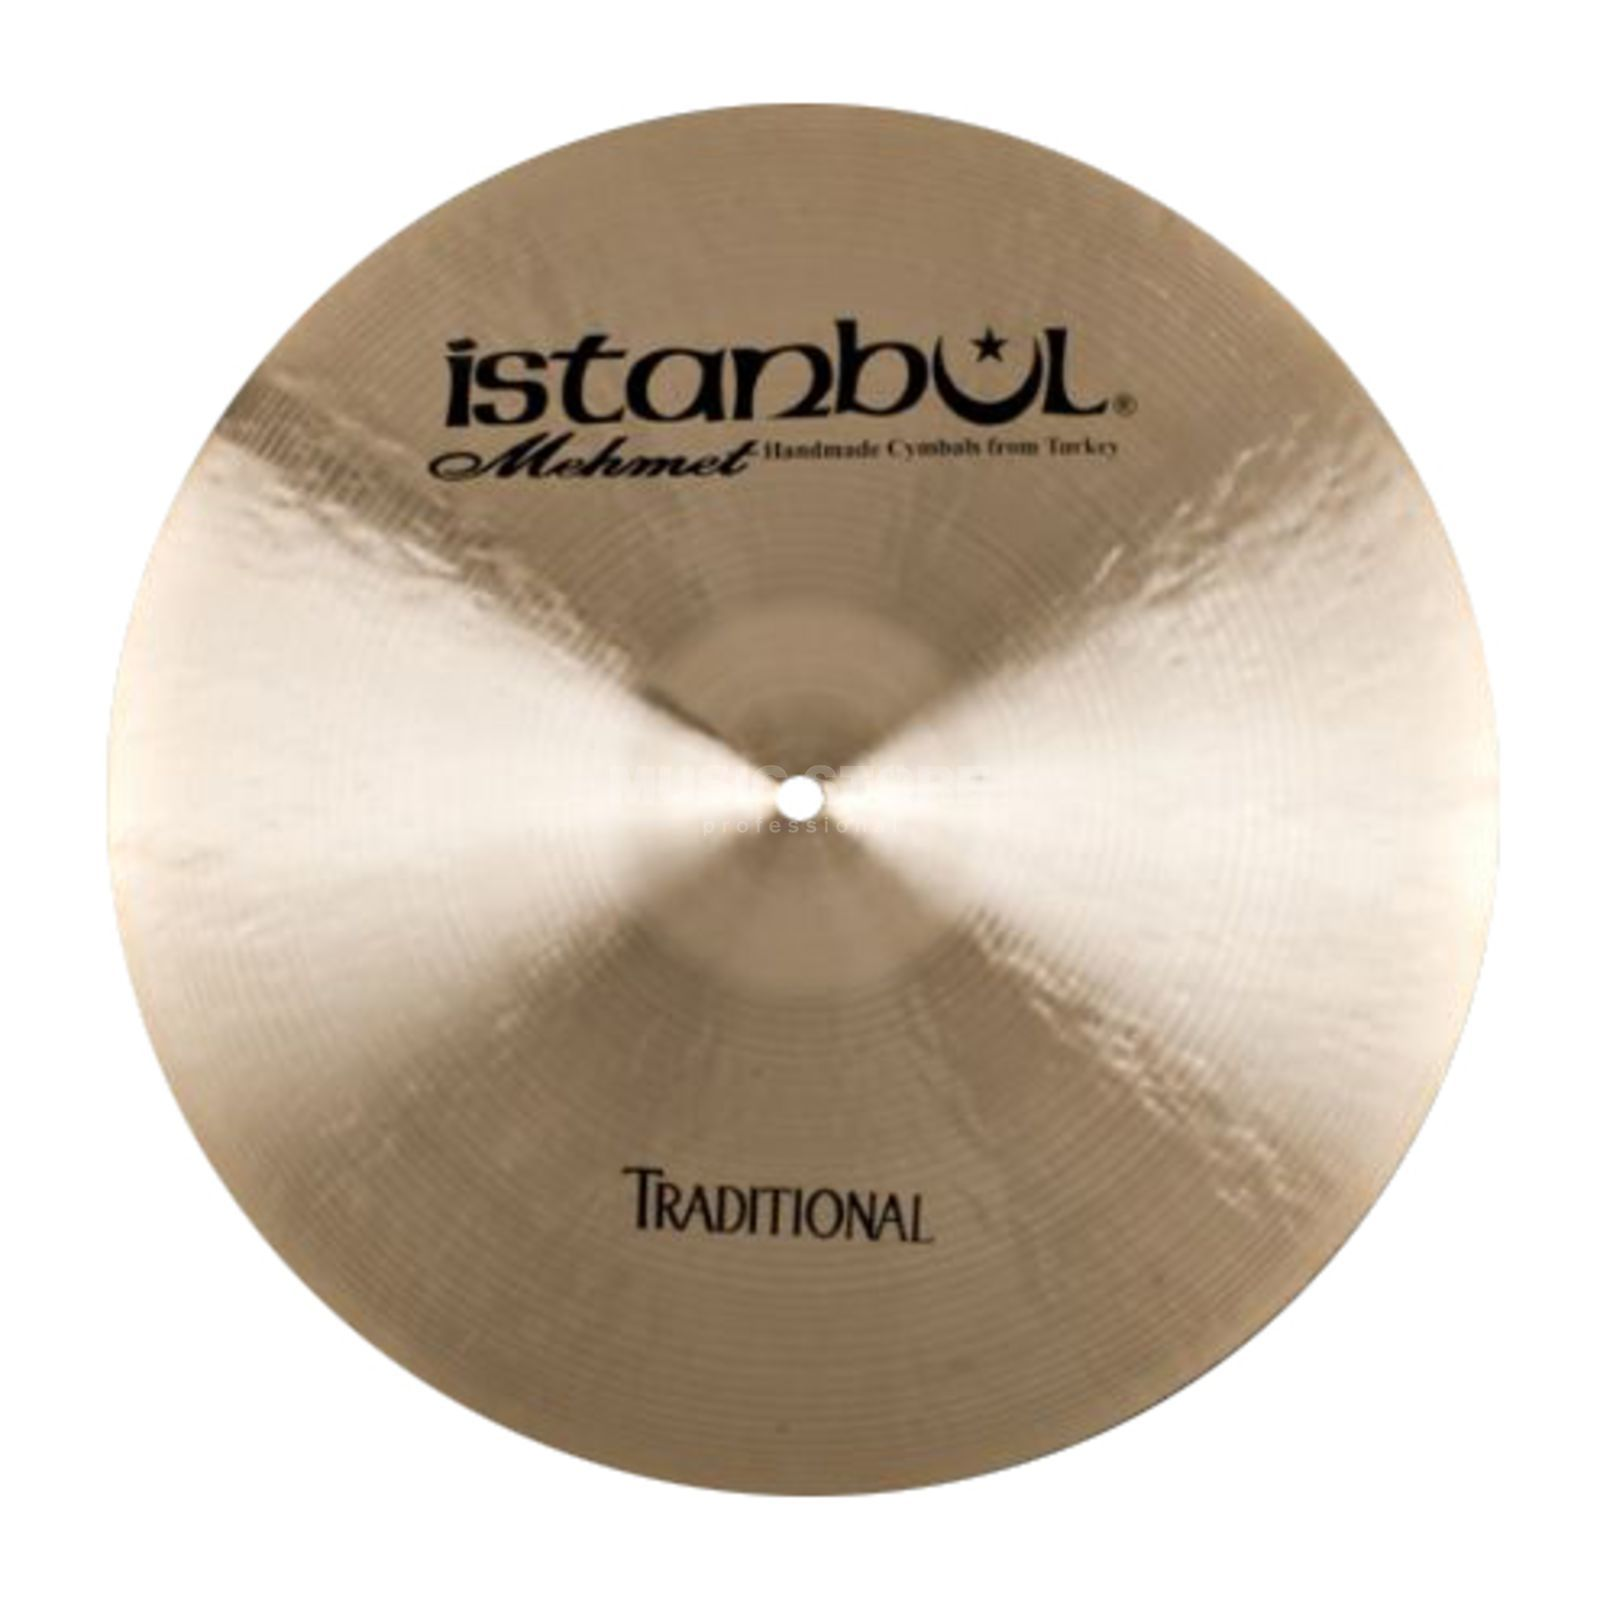 "Istanbul Traditional Dark Crash 14"", CD14 Productafbeelding"